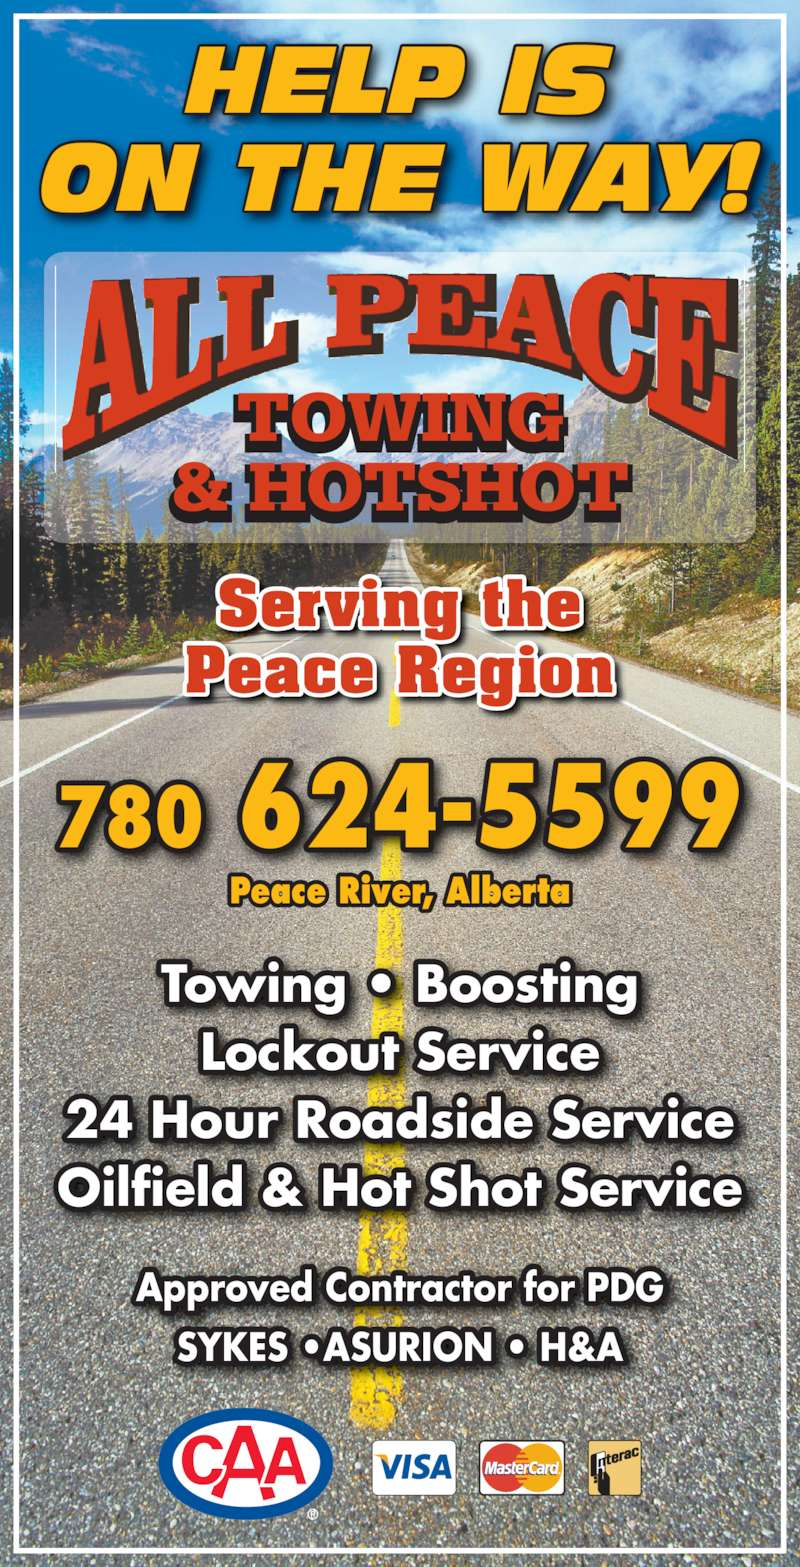 All Peace Towing & Hotshot (780-624-5599) - Display Ad - Lockout Service 24 Hour Roadside Service HELP IS ON THE WAY! TOWING & HOTSHOT Serving the Peace Region 780 624-5599 Peace River, Alberta Towing • Boosting Oilfield & Hot Shot Service Approved Contractor for PDG SYKES •ASURION • H&A